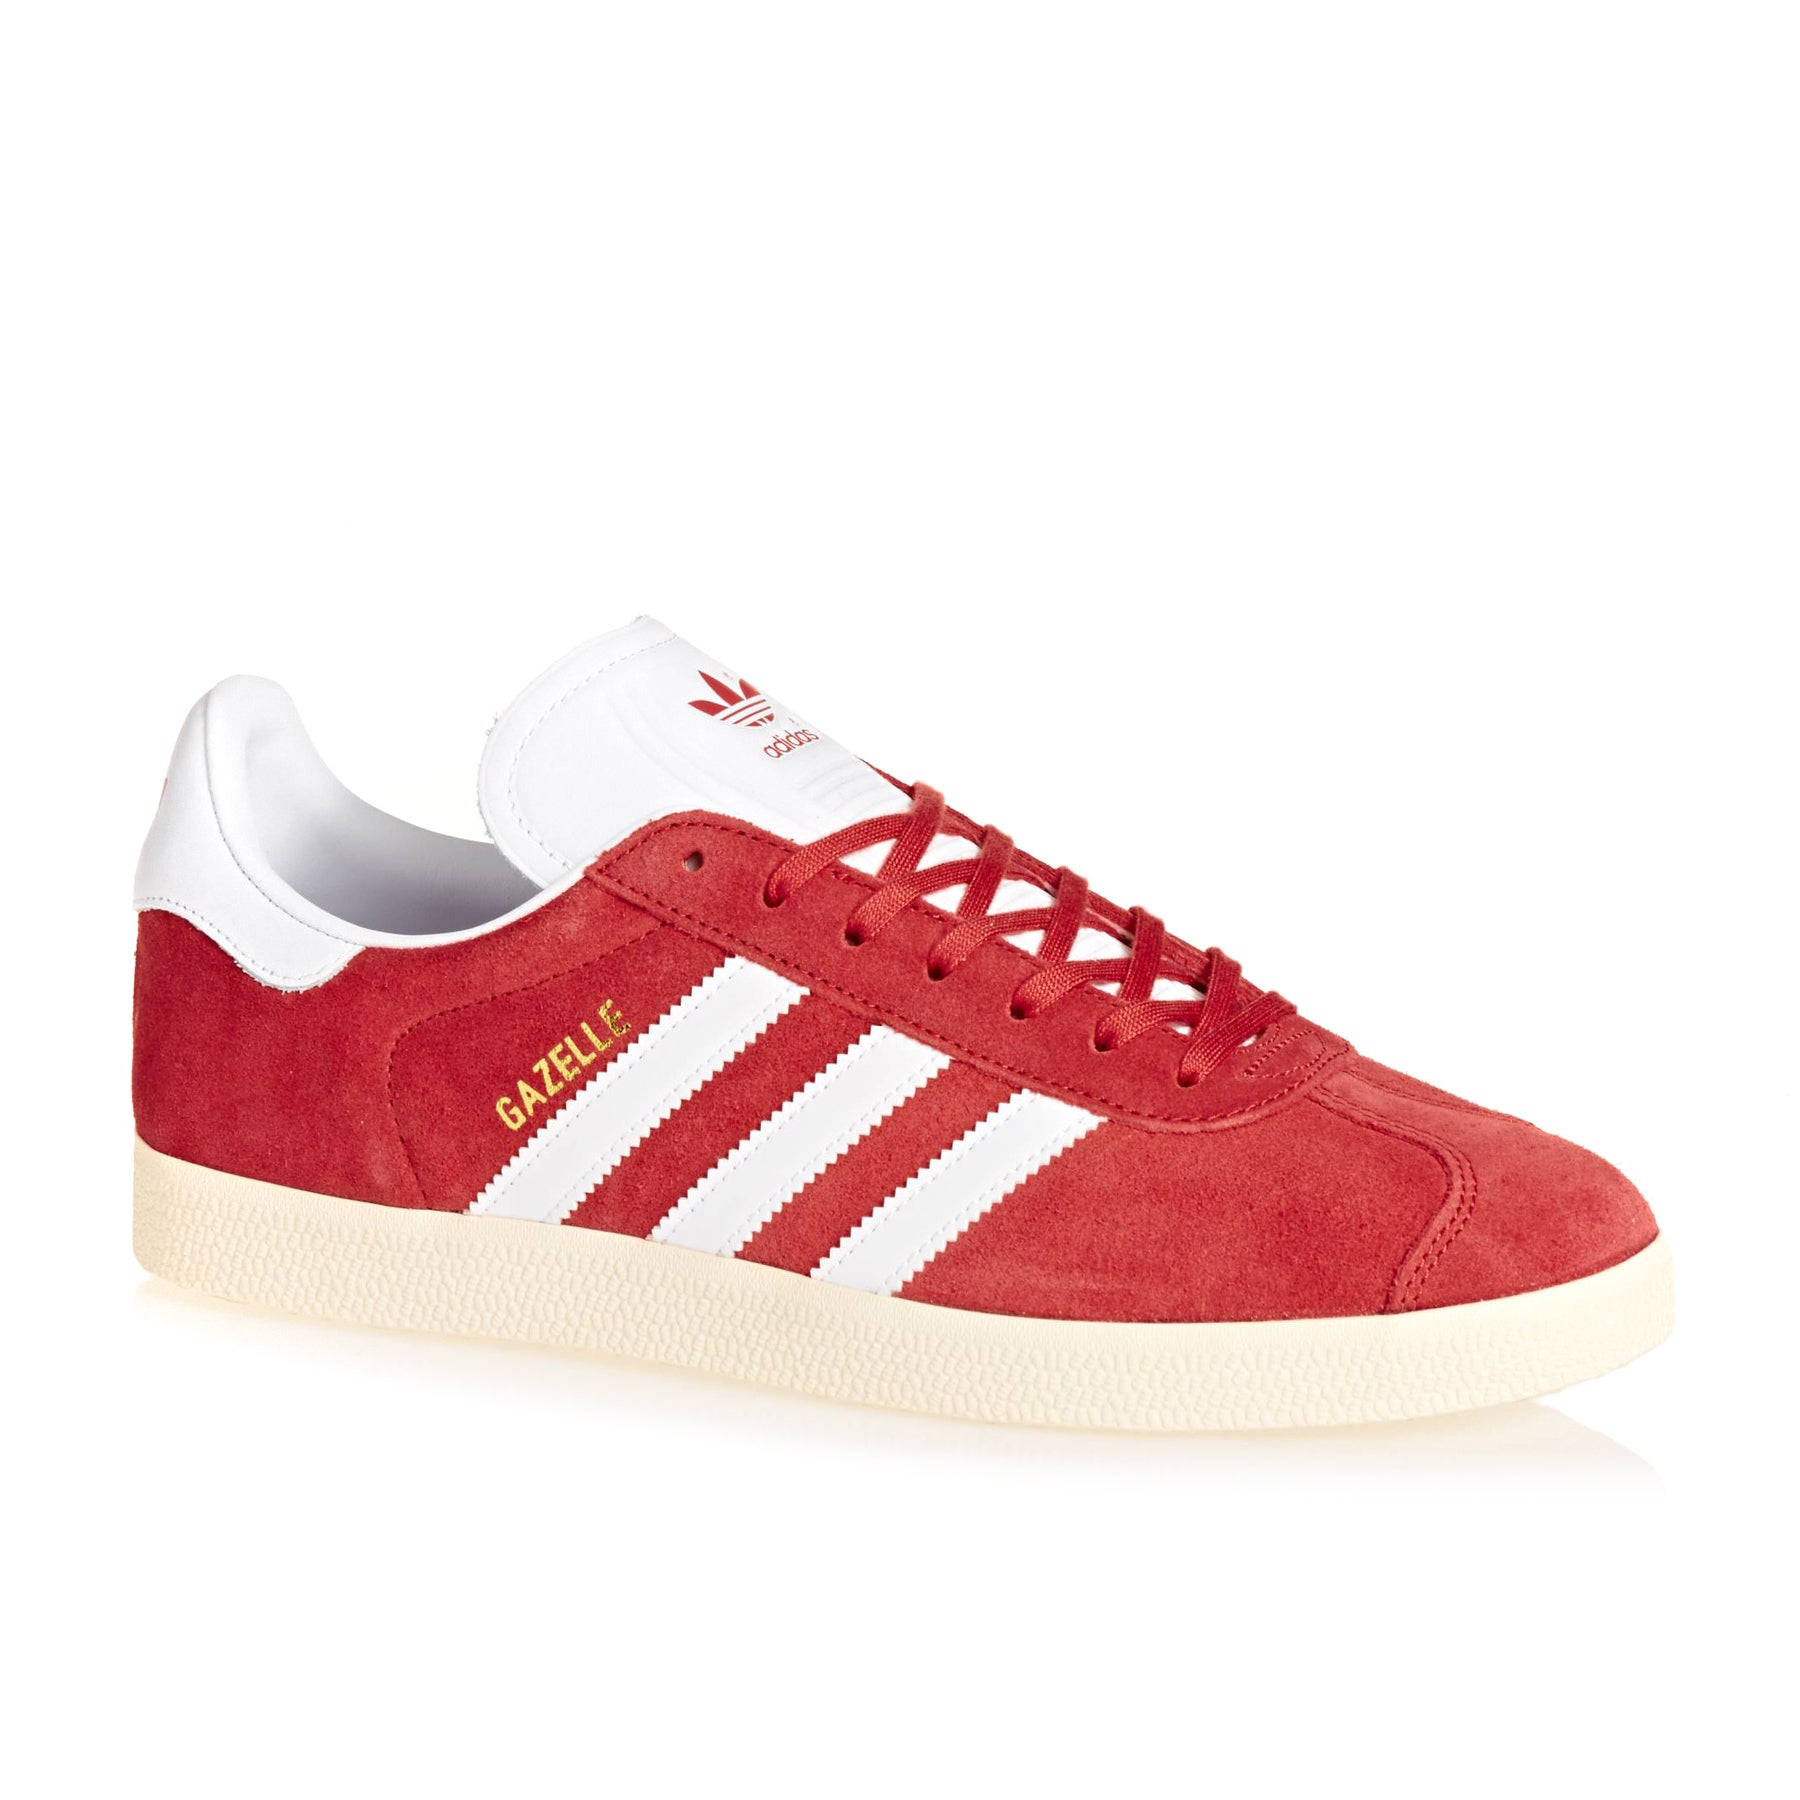 Calzado Adidas Originals Gazelle